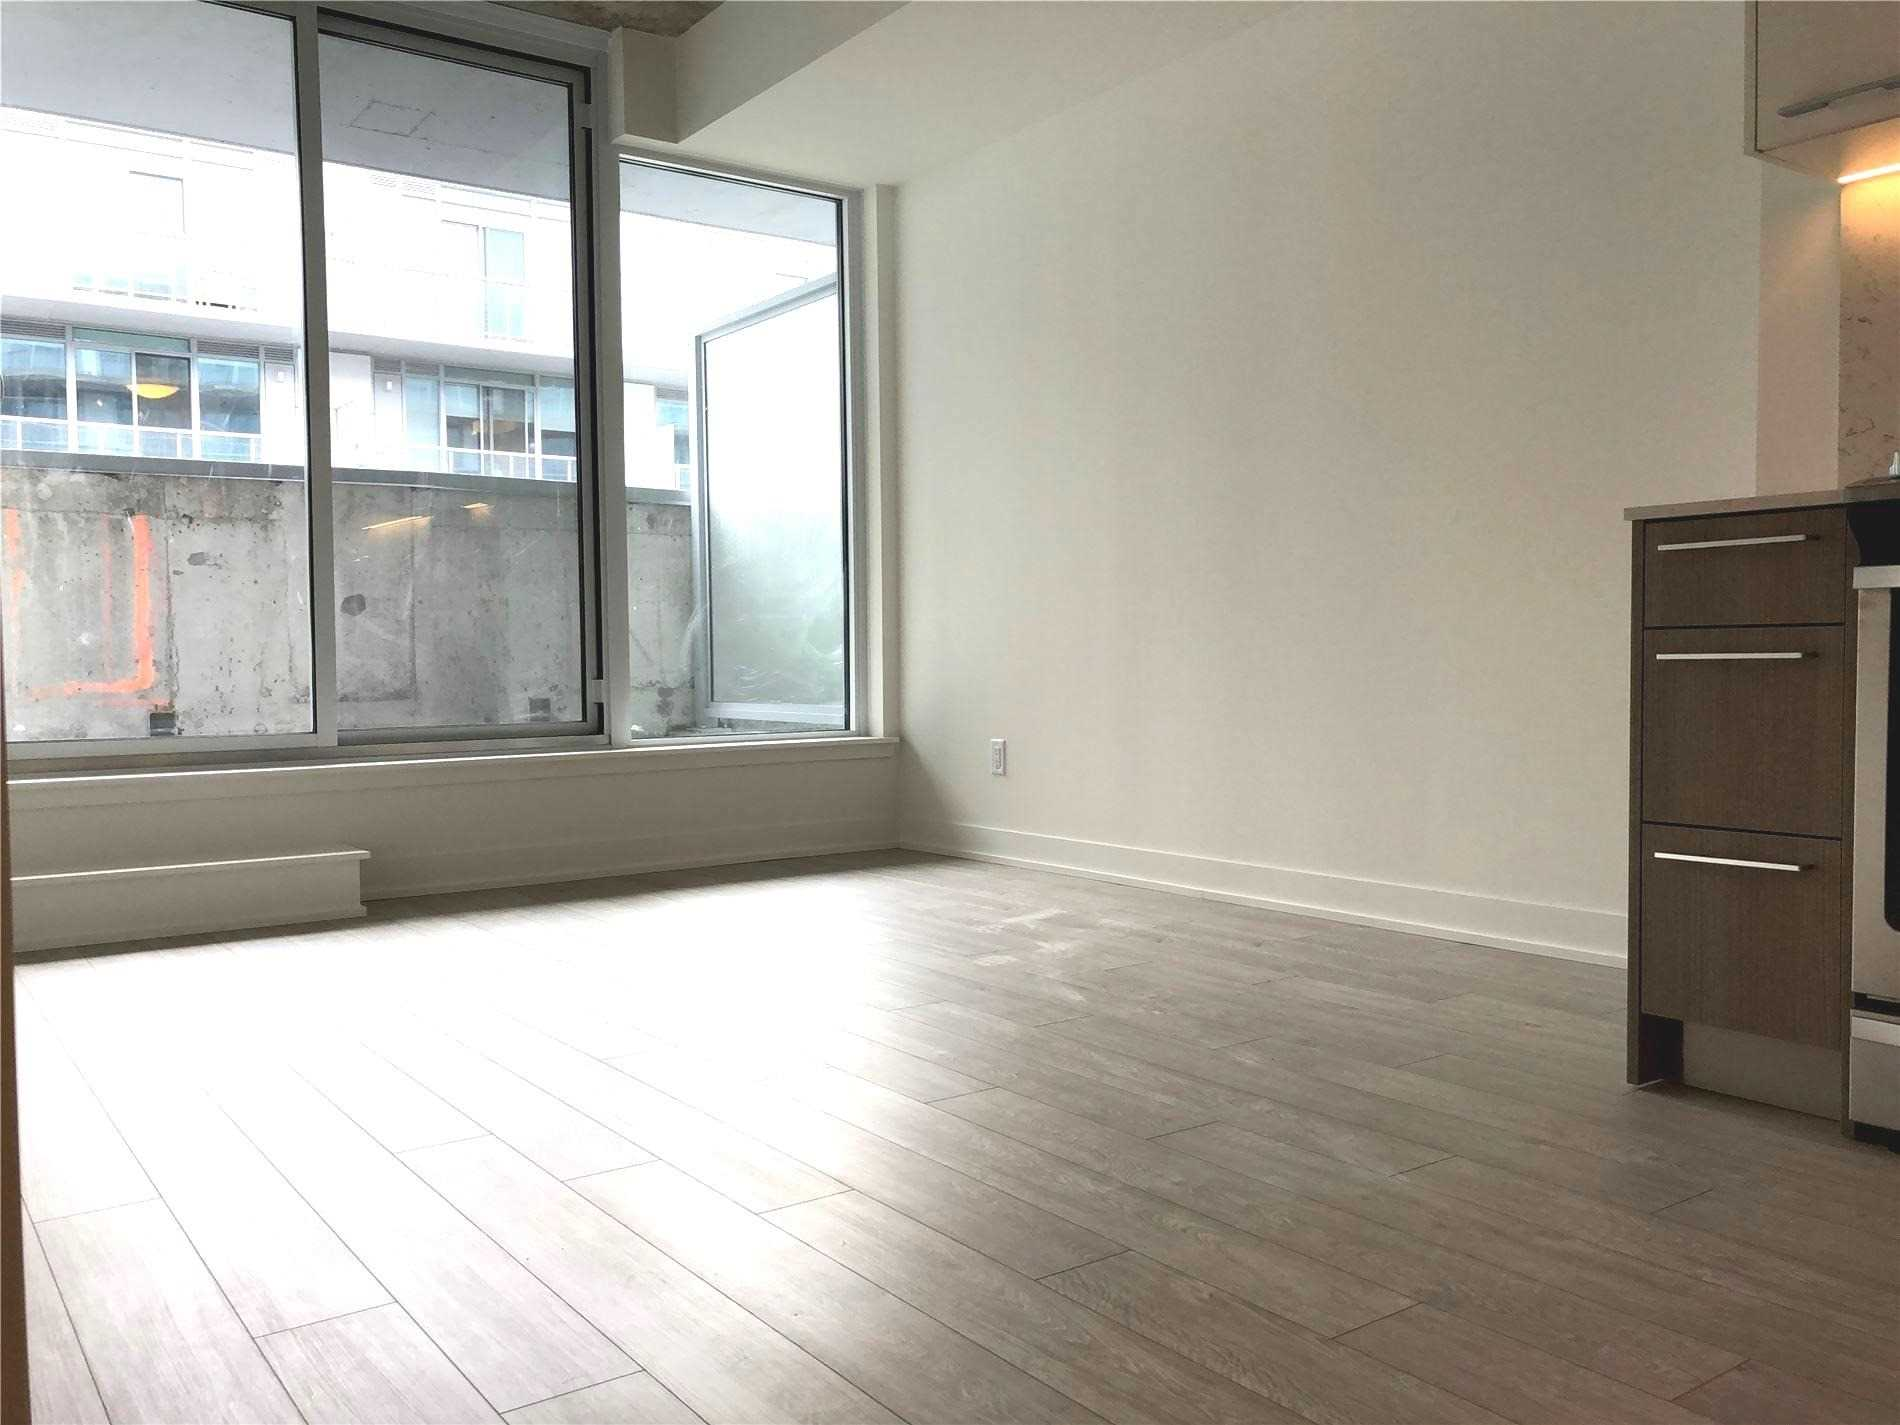 For Rent: 811 - 30 Baseball Place, Toronto, ON   1 Bed, 1 Bath Condo for $1950.00. See 17 photos!